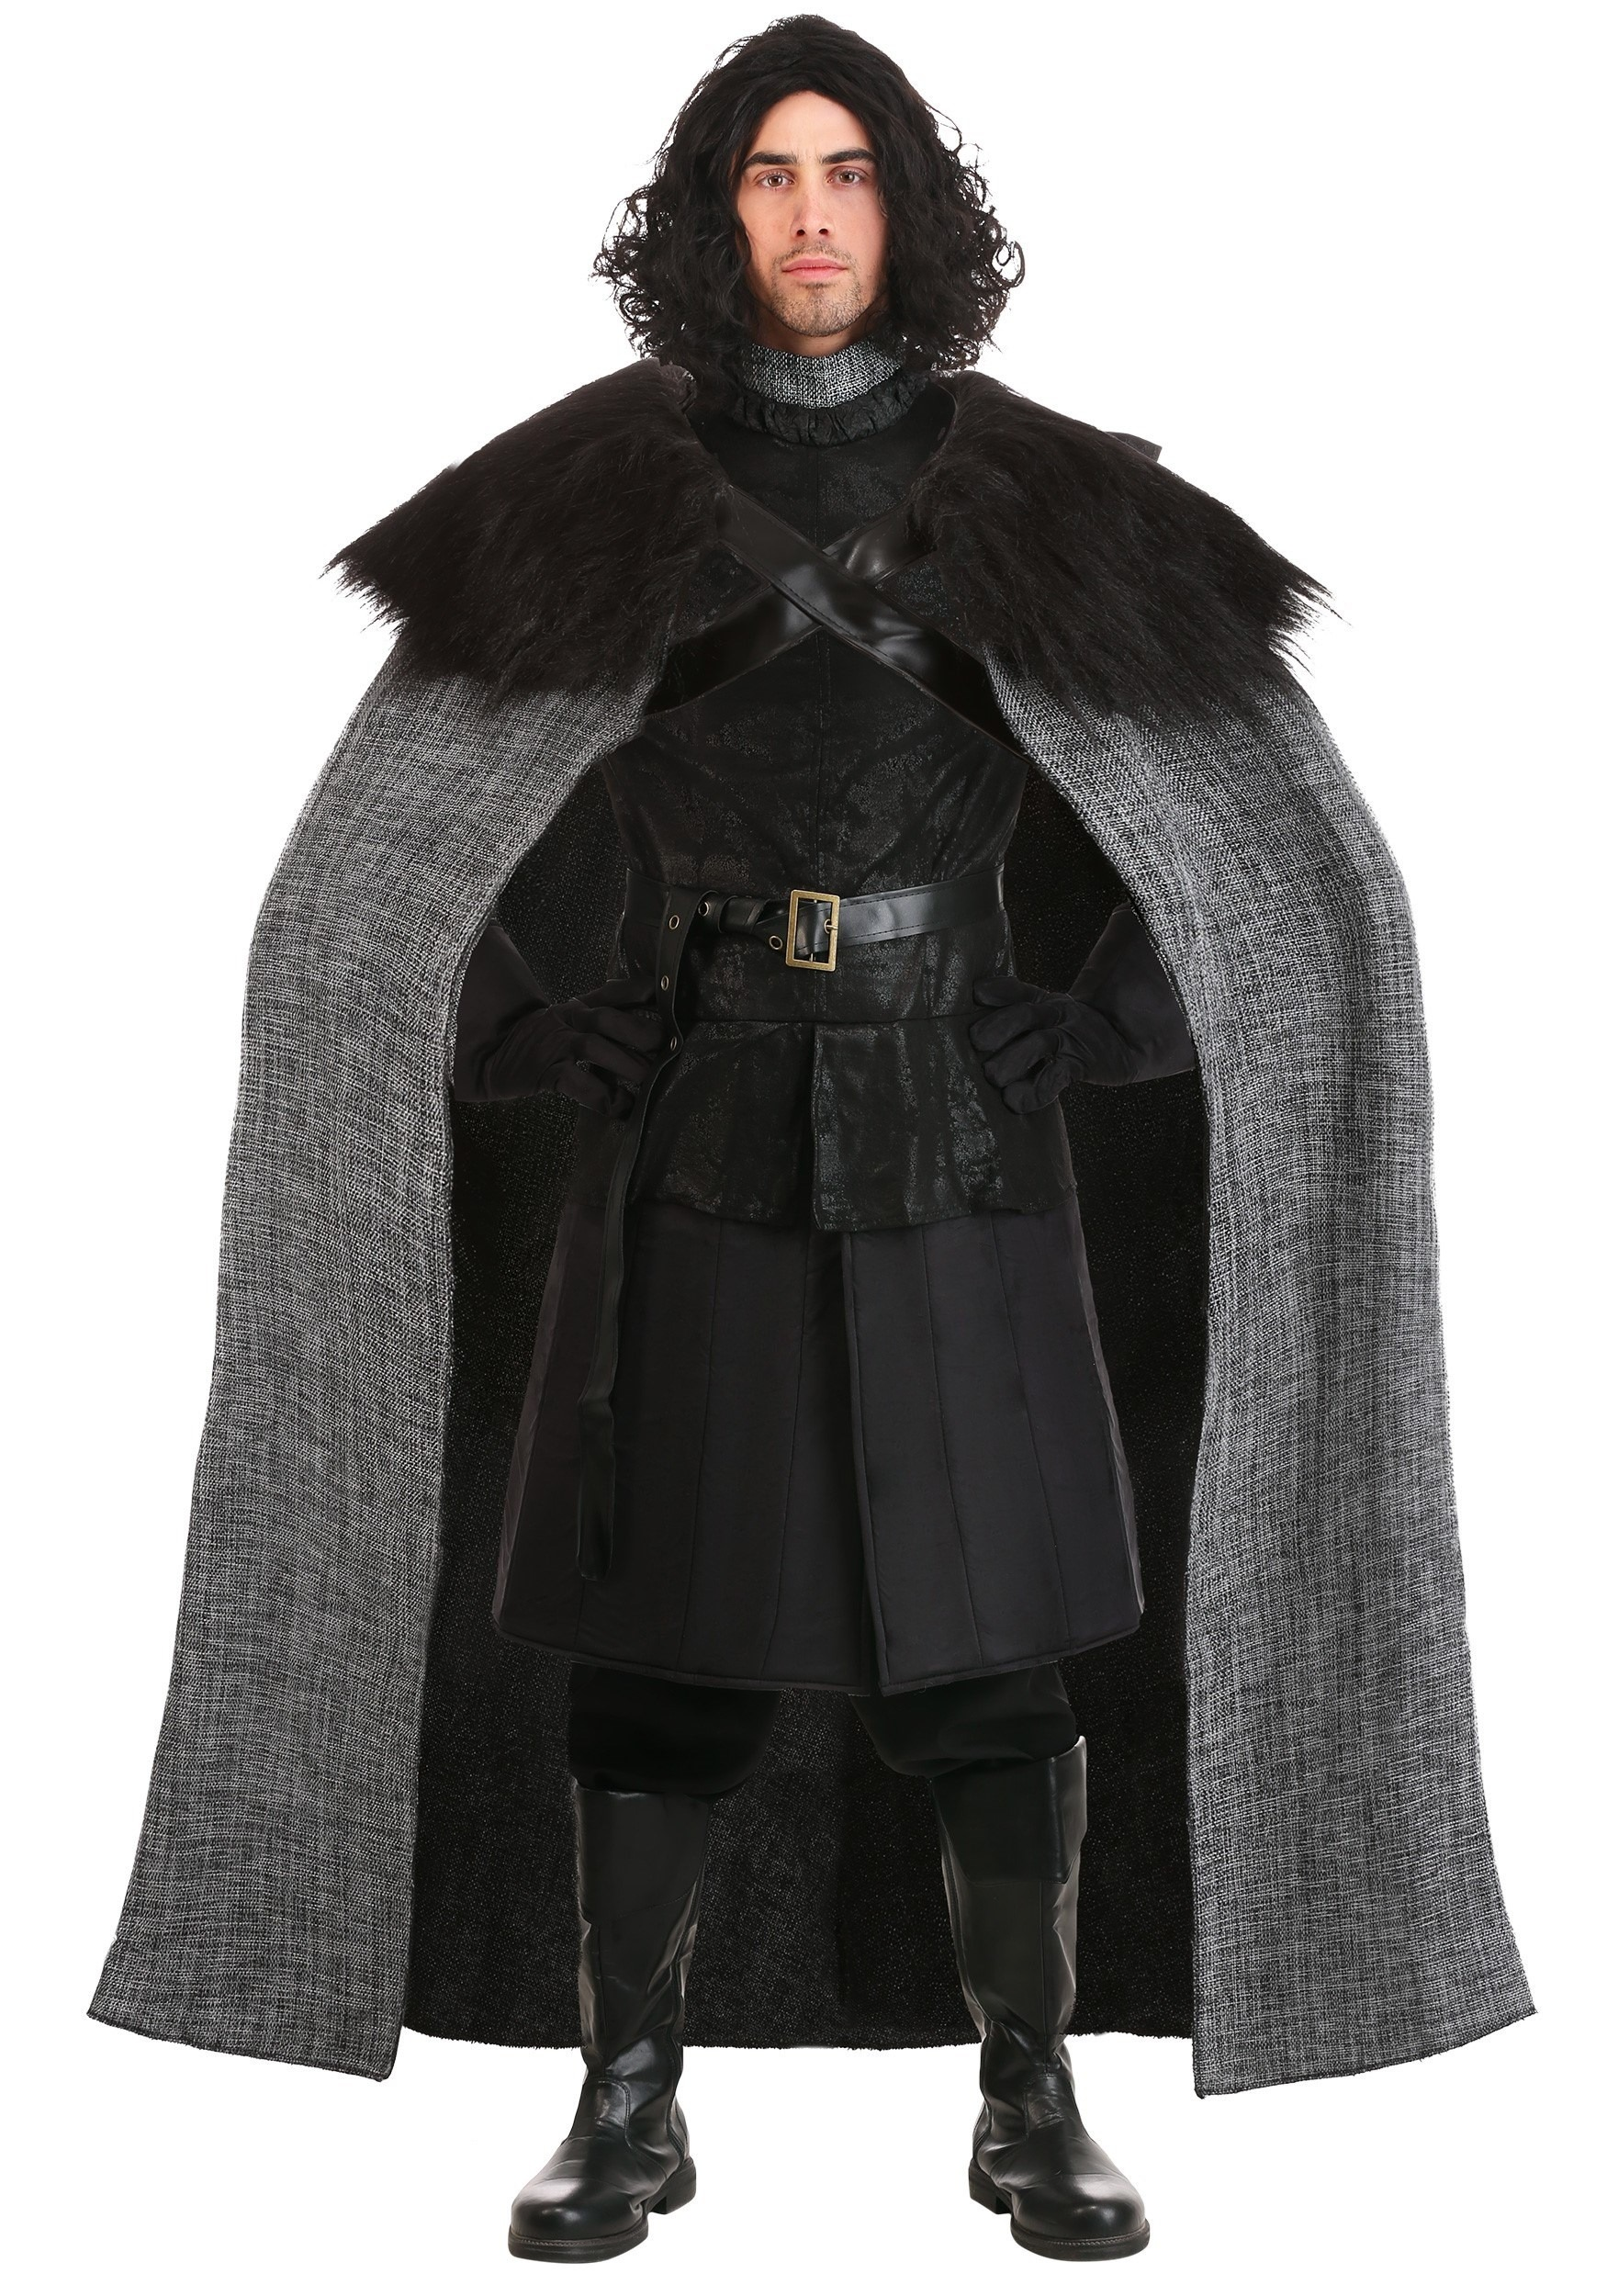 Dark Northern King Plus Size Costume for Men